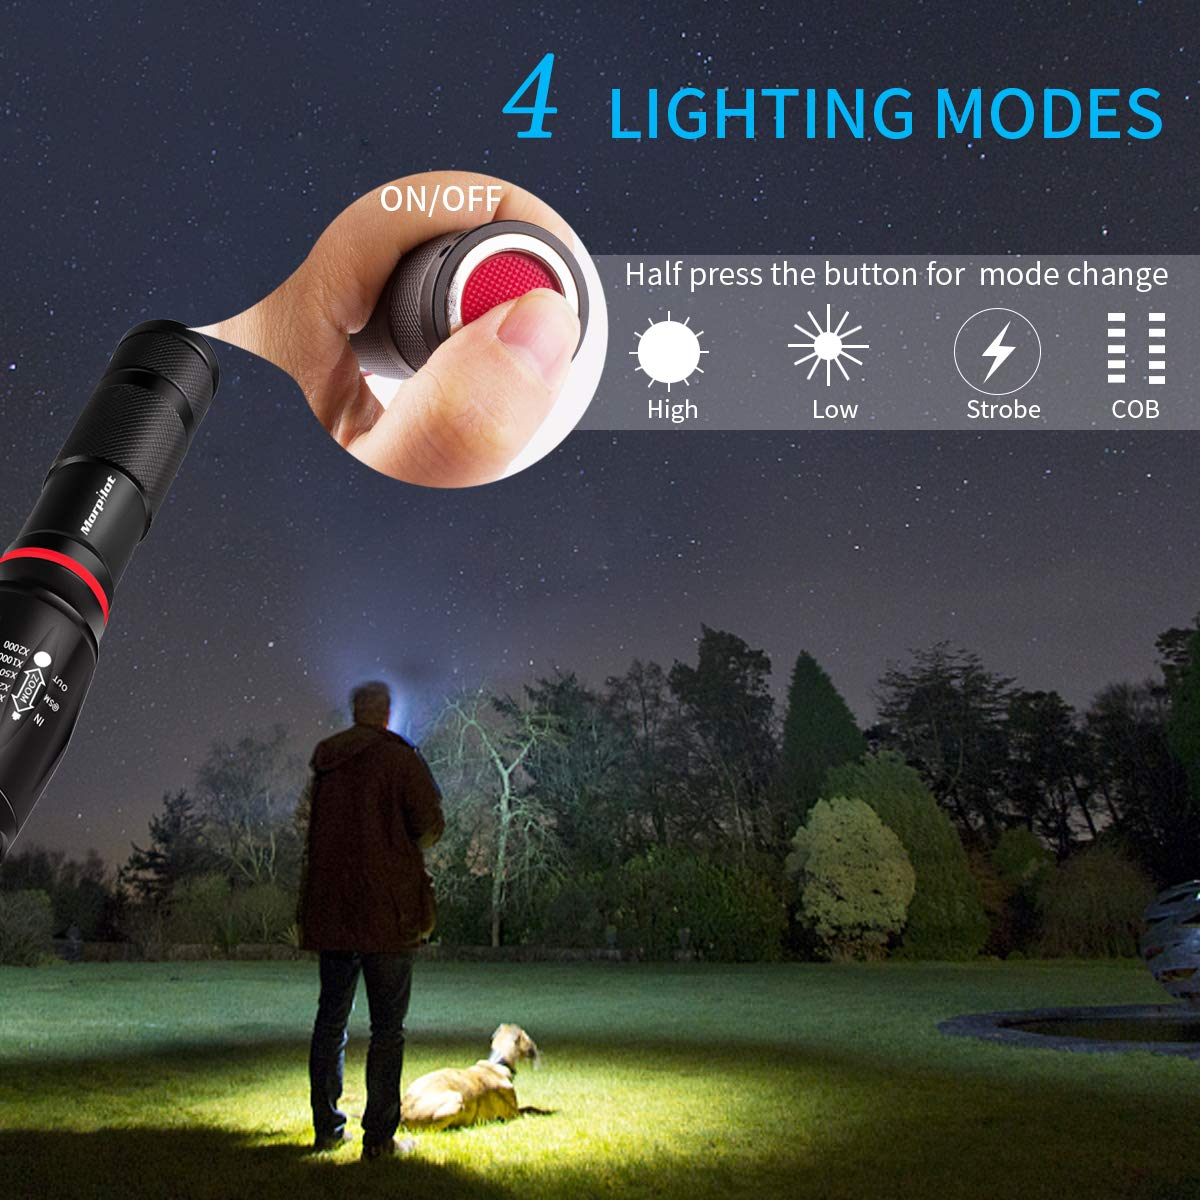 LED Tactical Flashlight, Built-in Light Zoom Telescoping LED COB Work Light with 4 Modes and Magnetic Base for Work Camping Hiking